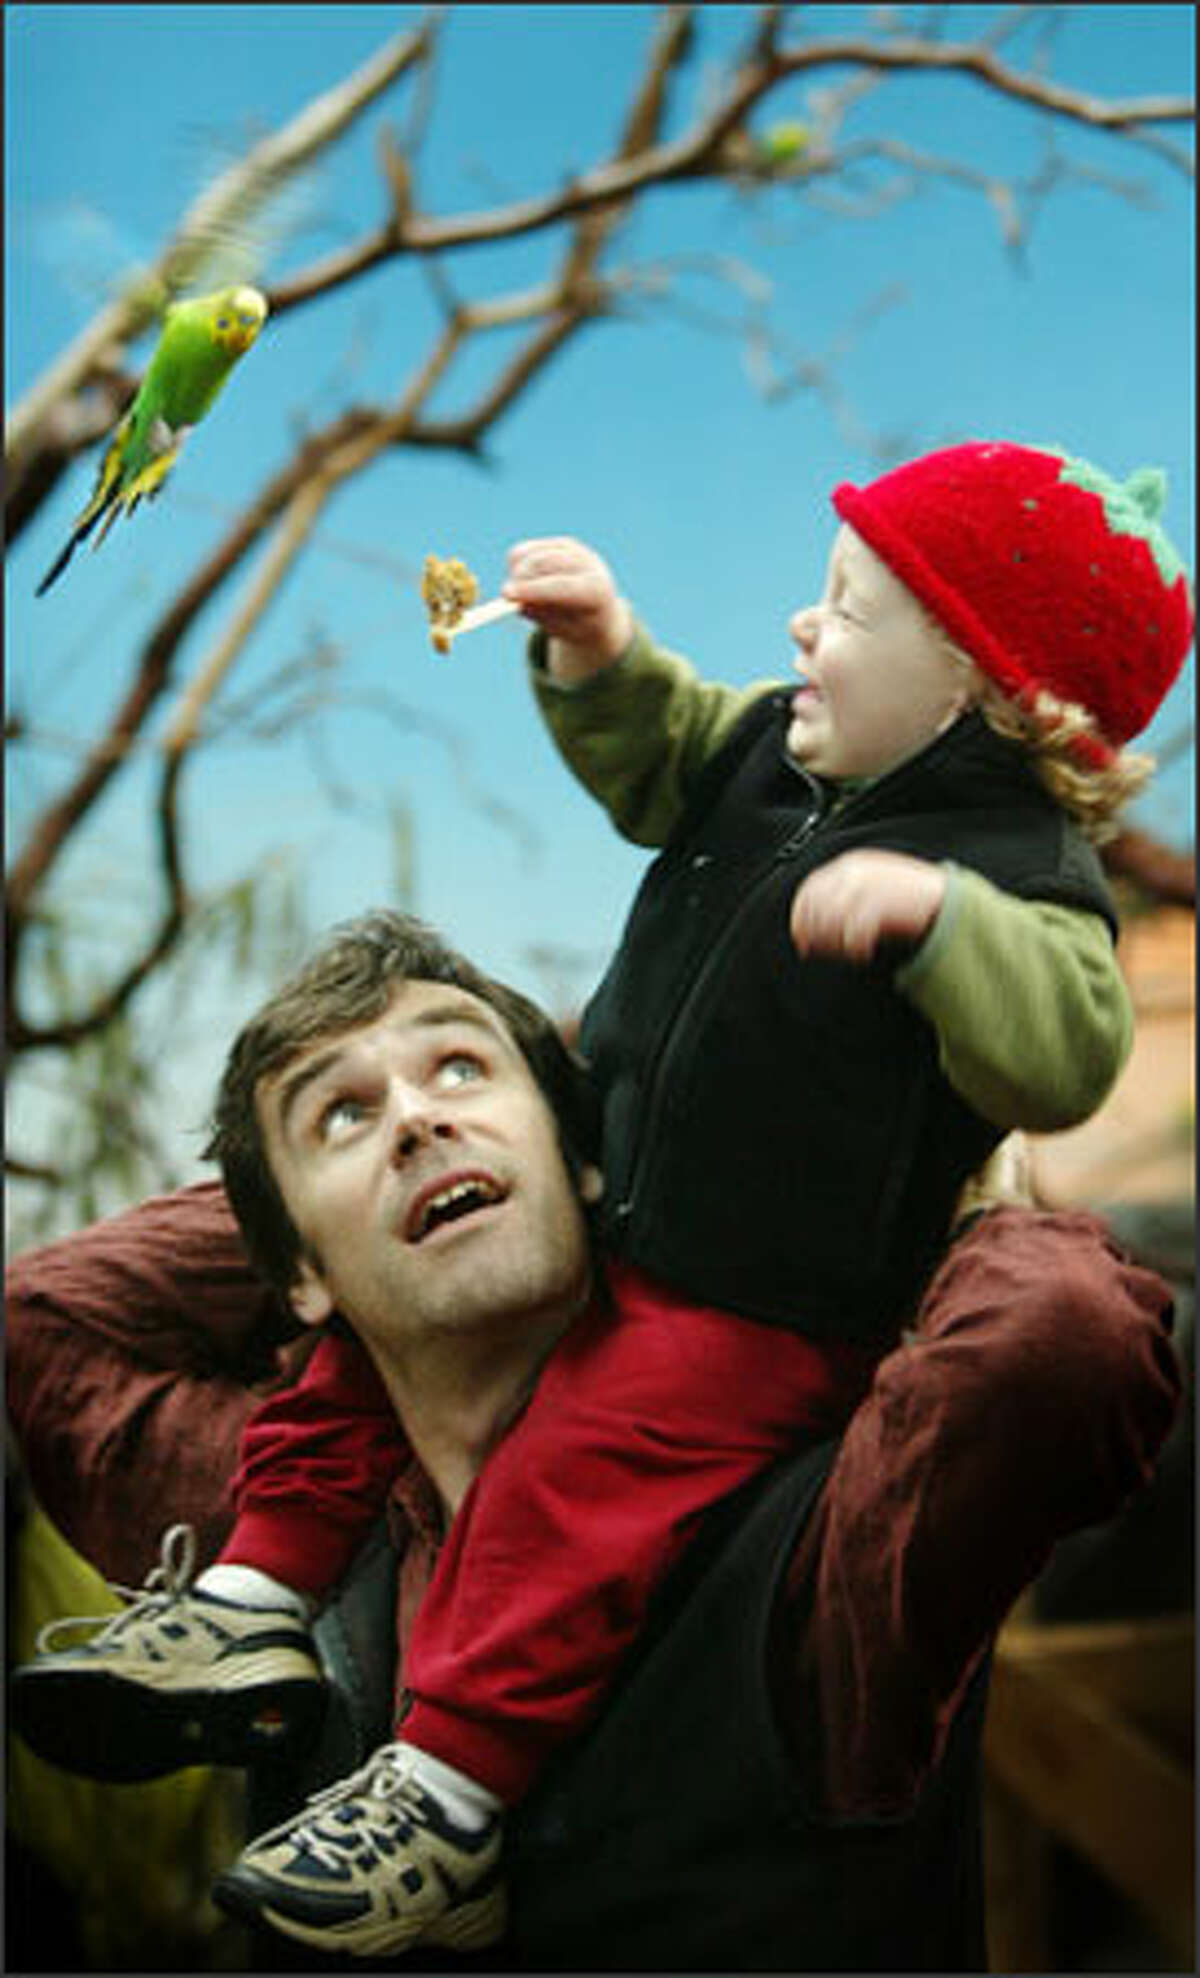 Randy Gladwish holds his son Owen, 20 months, up to feed a hungry bird at Woodland Park Zoo's aviary.